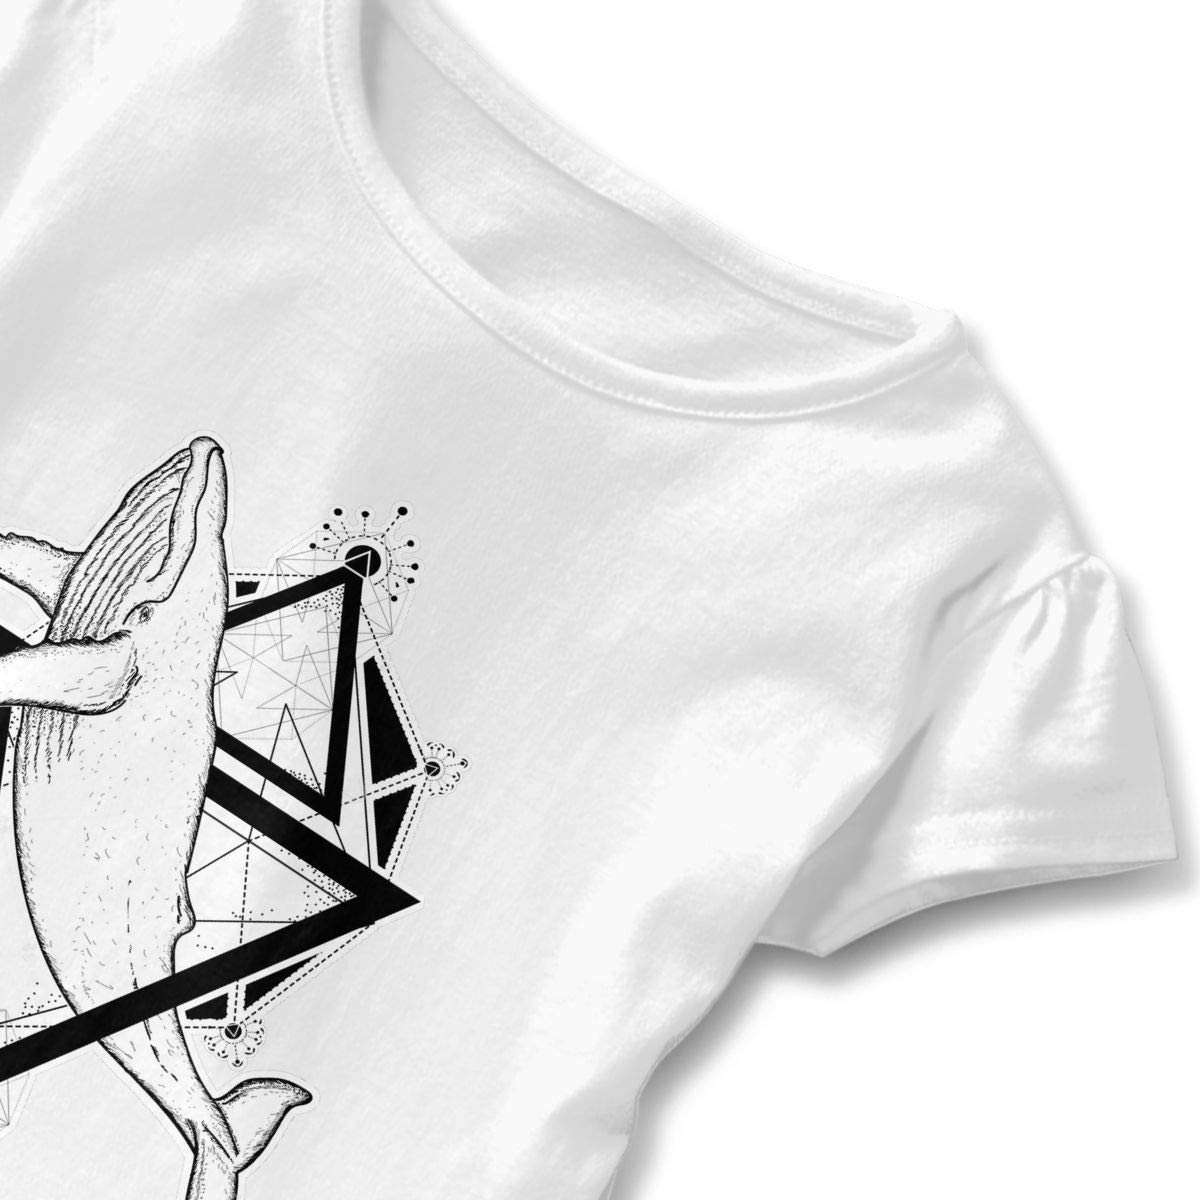 QUZtww Sketch Polyhedron Whale Toddler Baby Girl Basic Printed Ruffle Short Sleeve Cotton T Shirts Tops Tee Clothes White